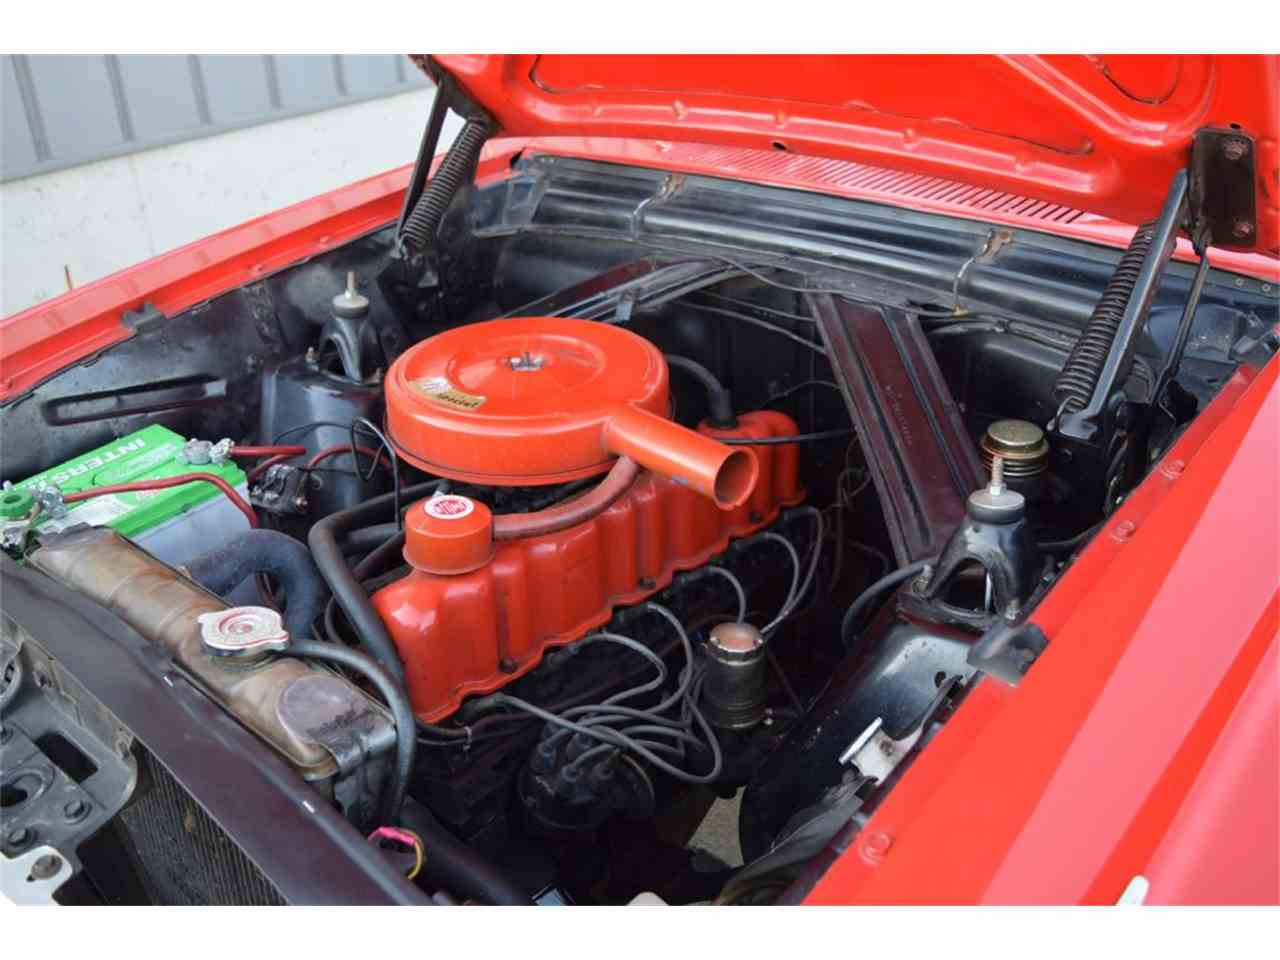 Large Picture of '63 Falcon Futura located in Iowa - $24,900.00 Offered by Jensen Dealerships - LUN9